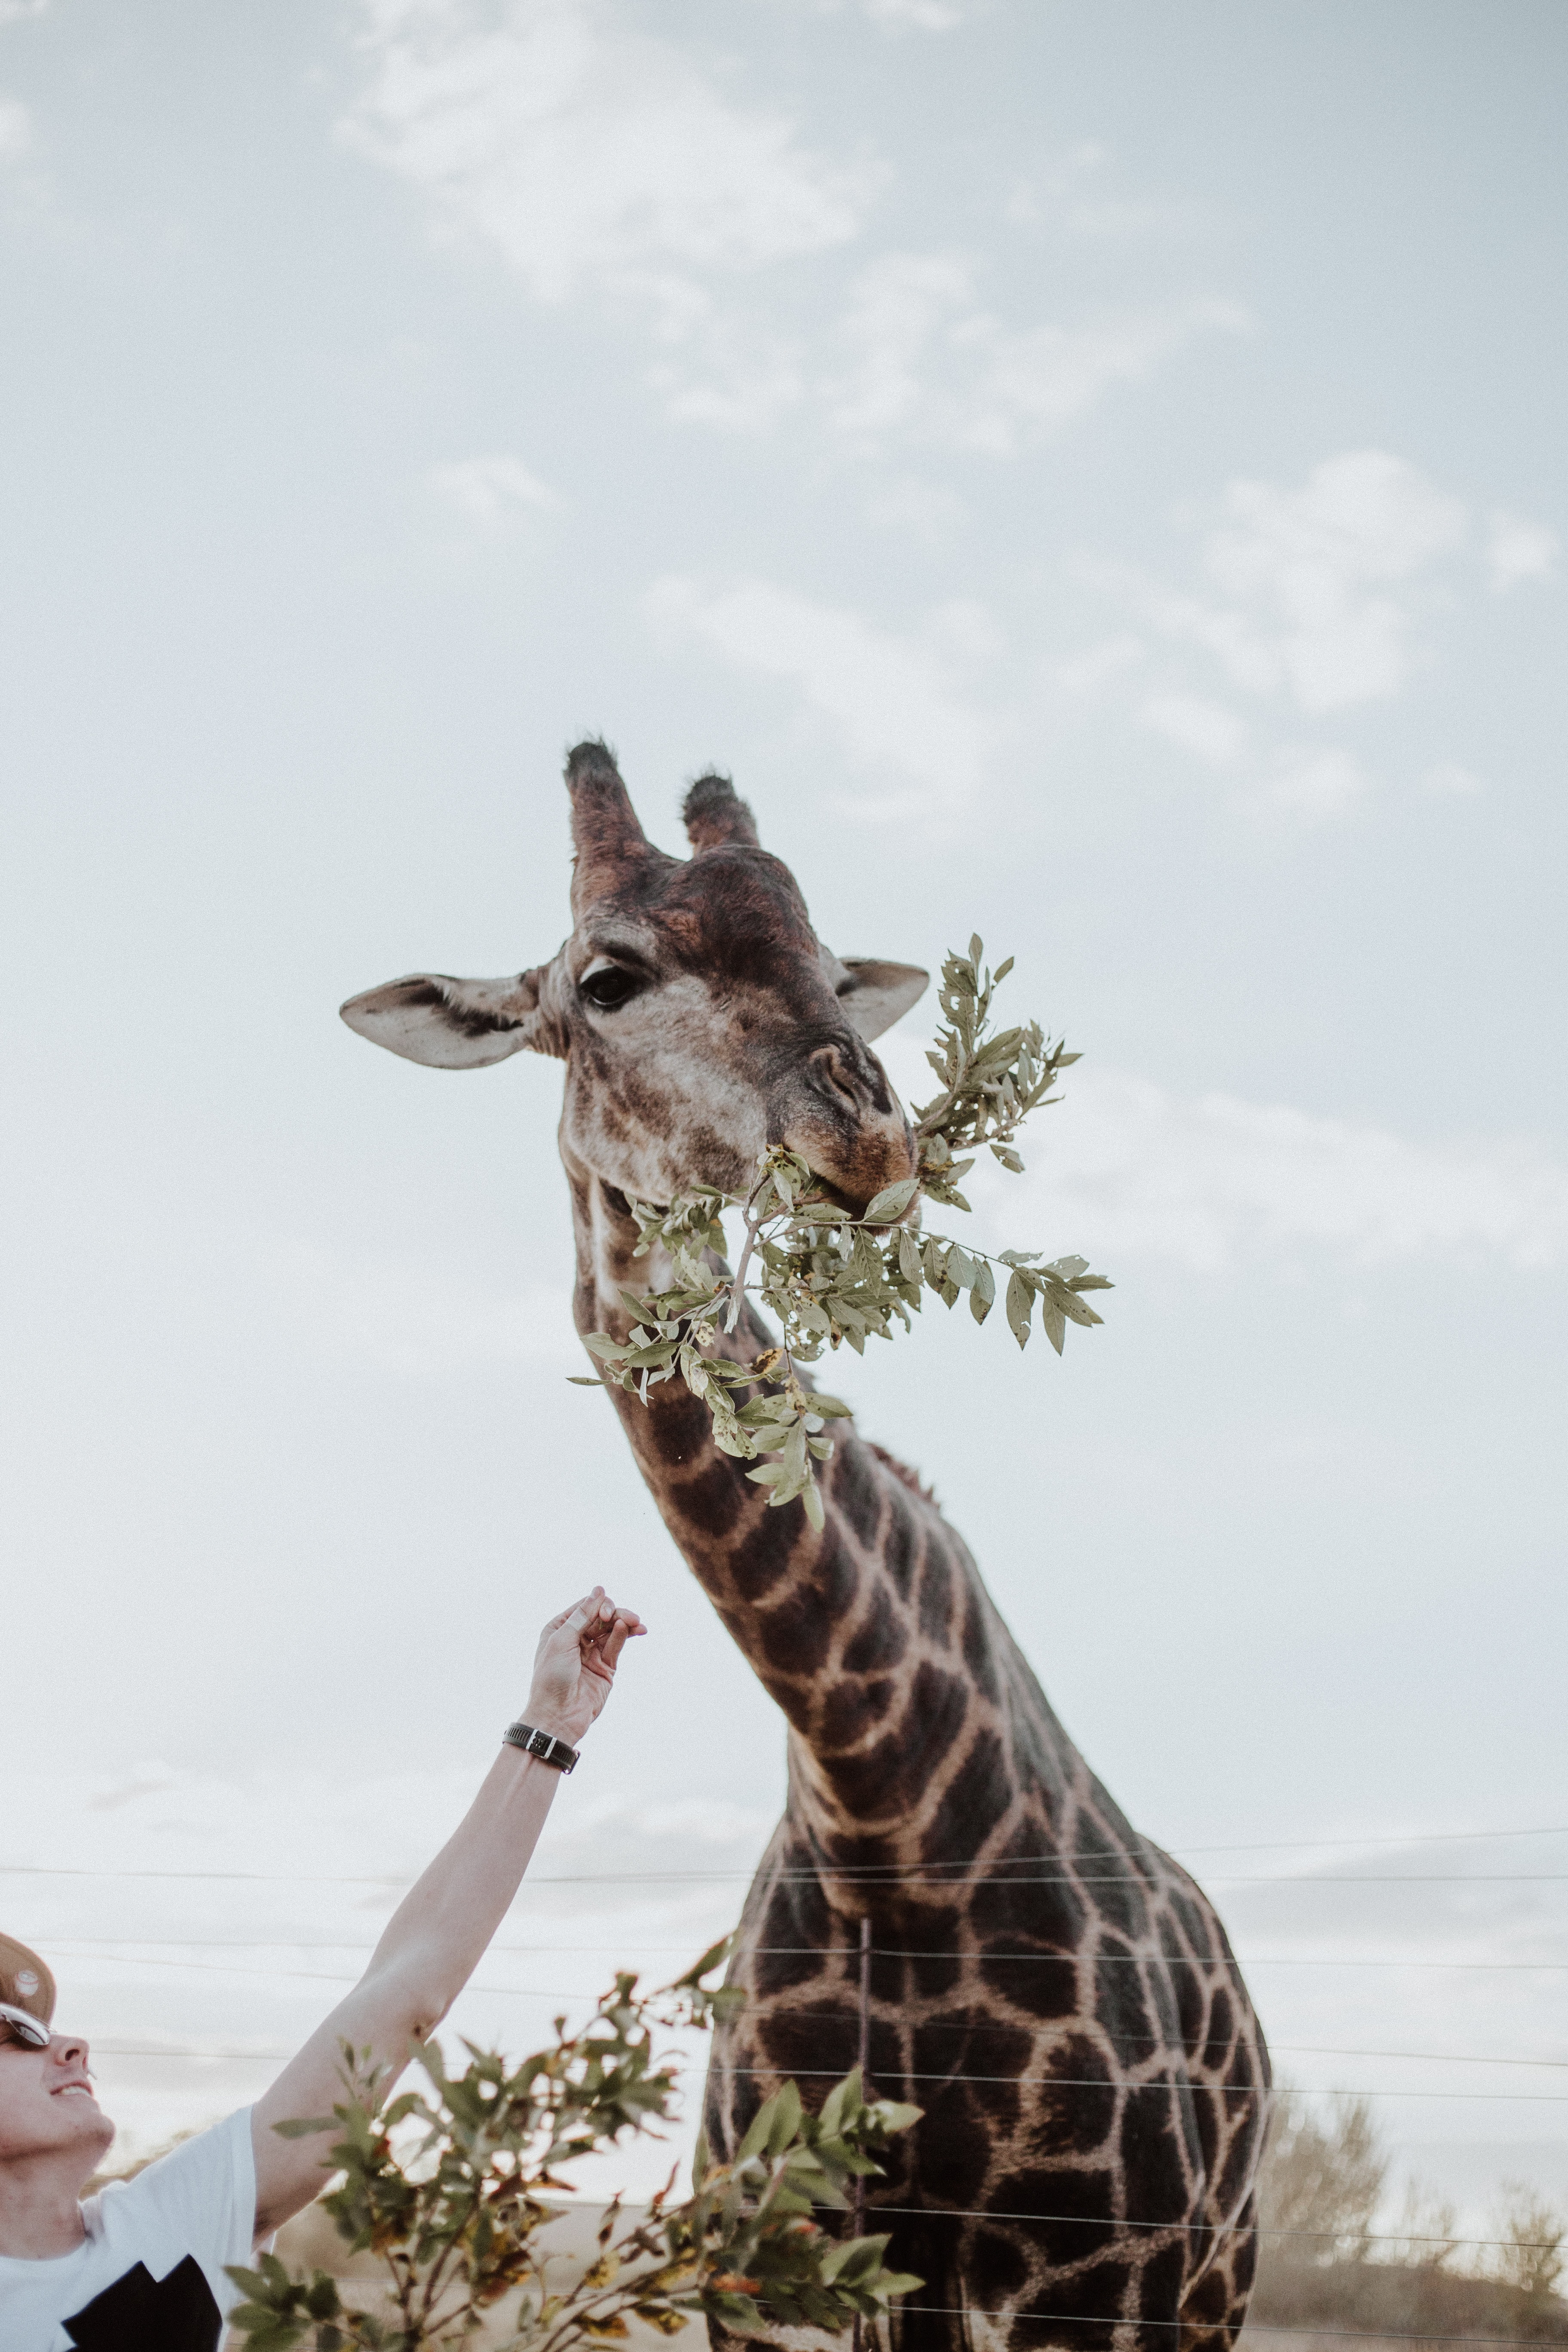 giraffe eating plants